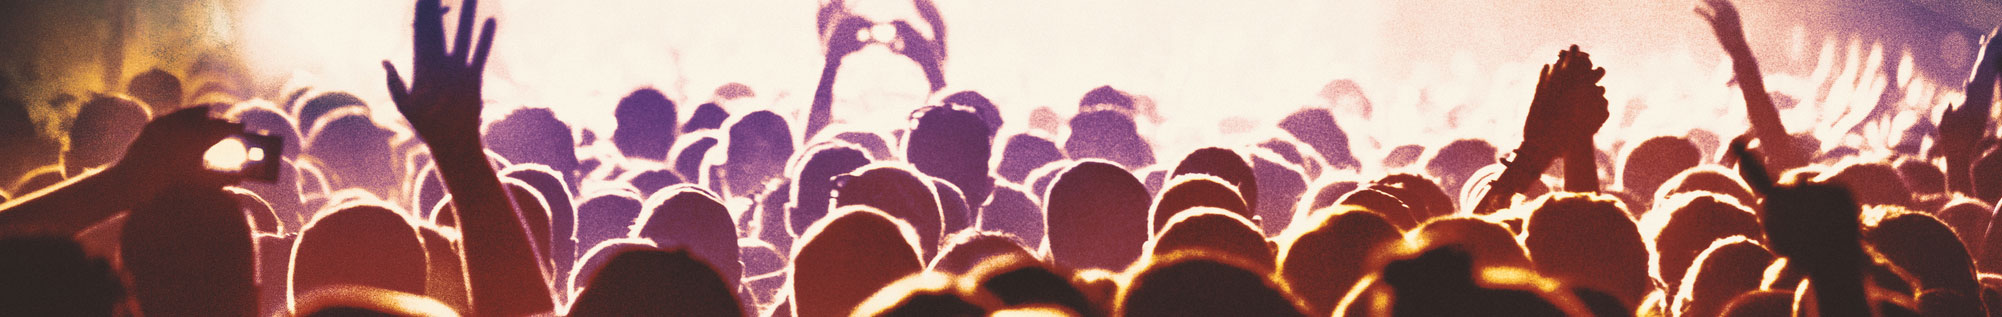 entertainment law - a crowd at a concert